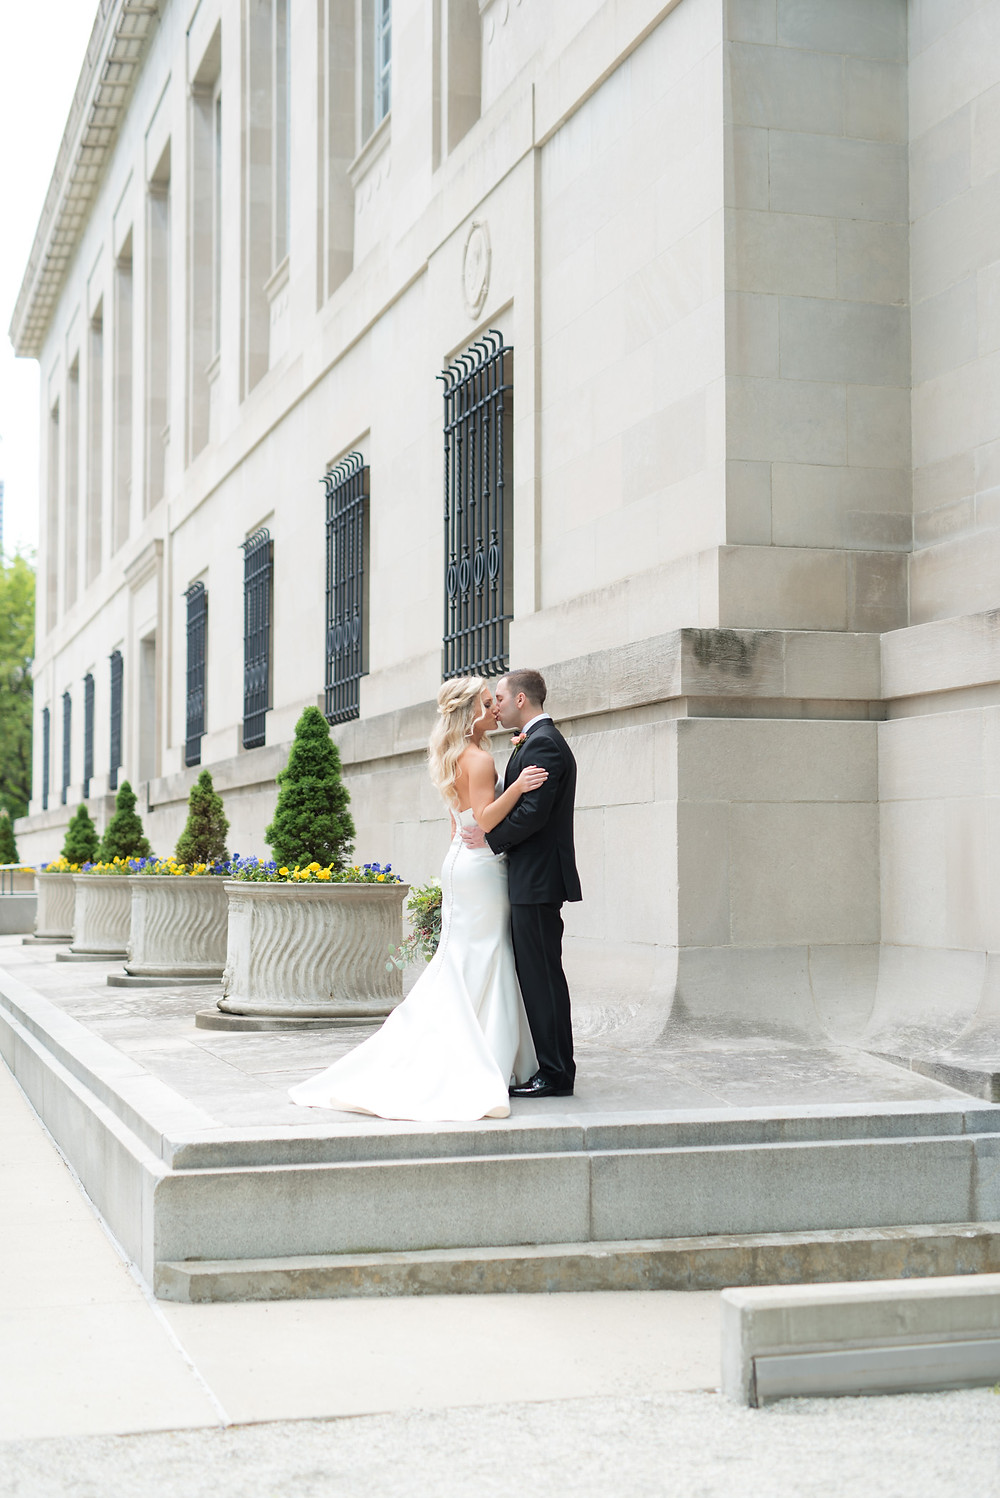 Indianapolis public library wedding and reception